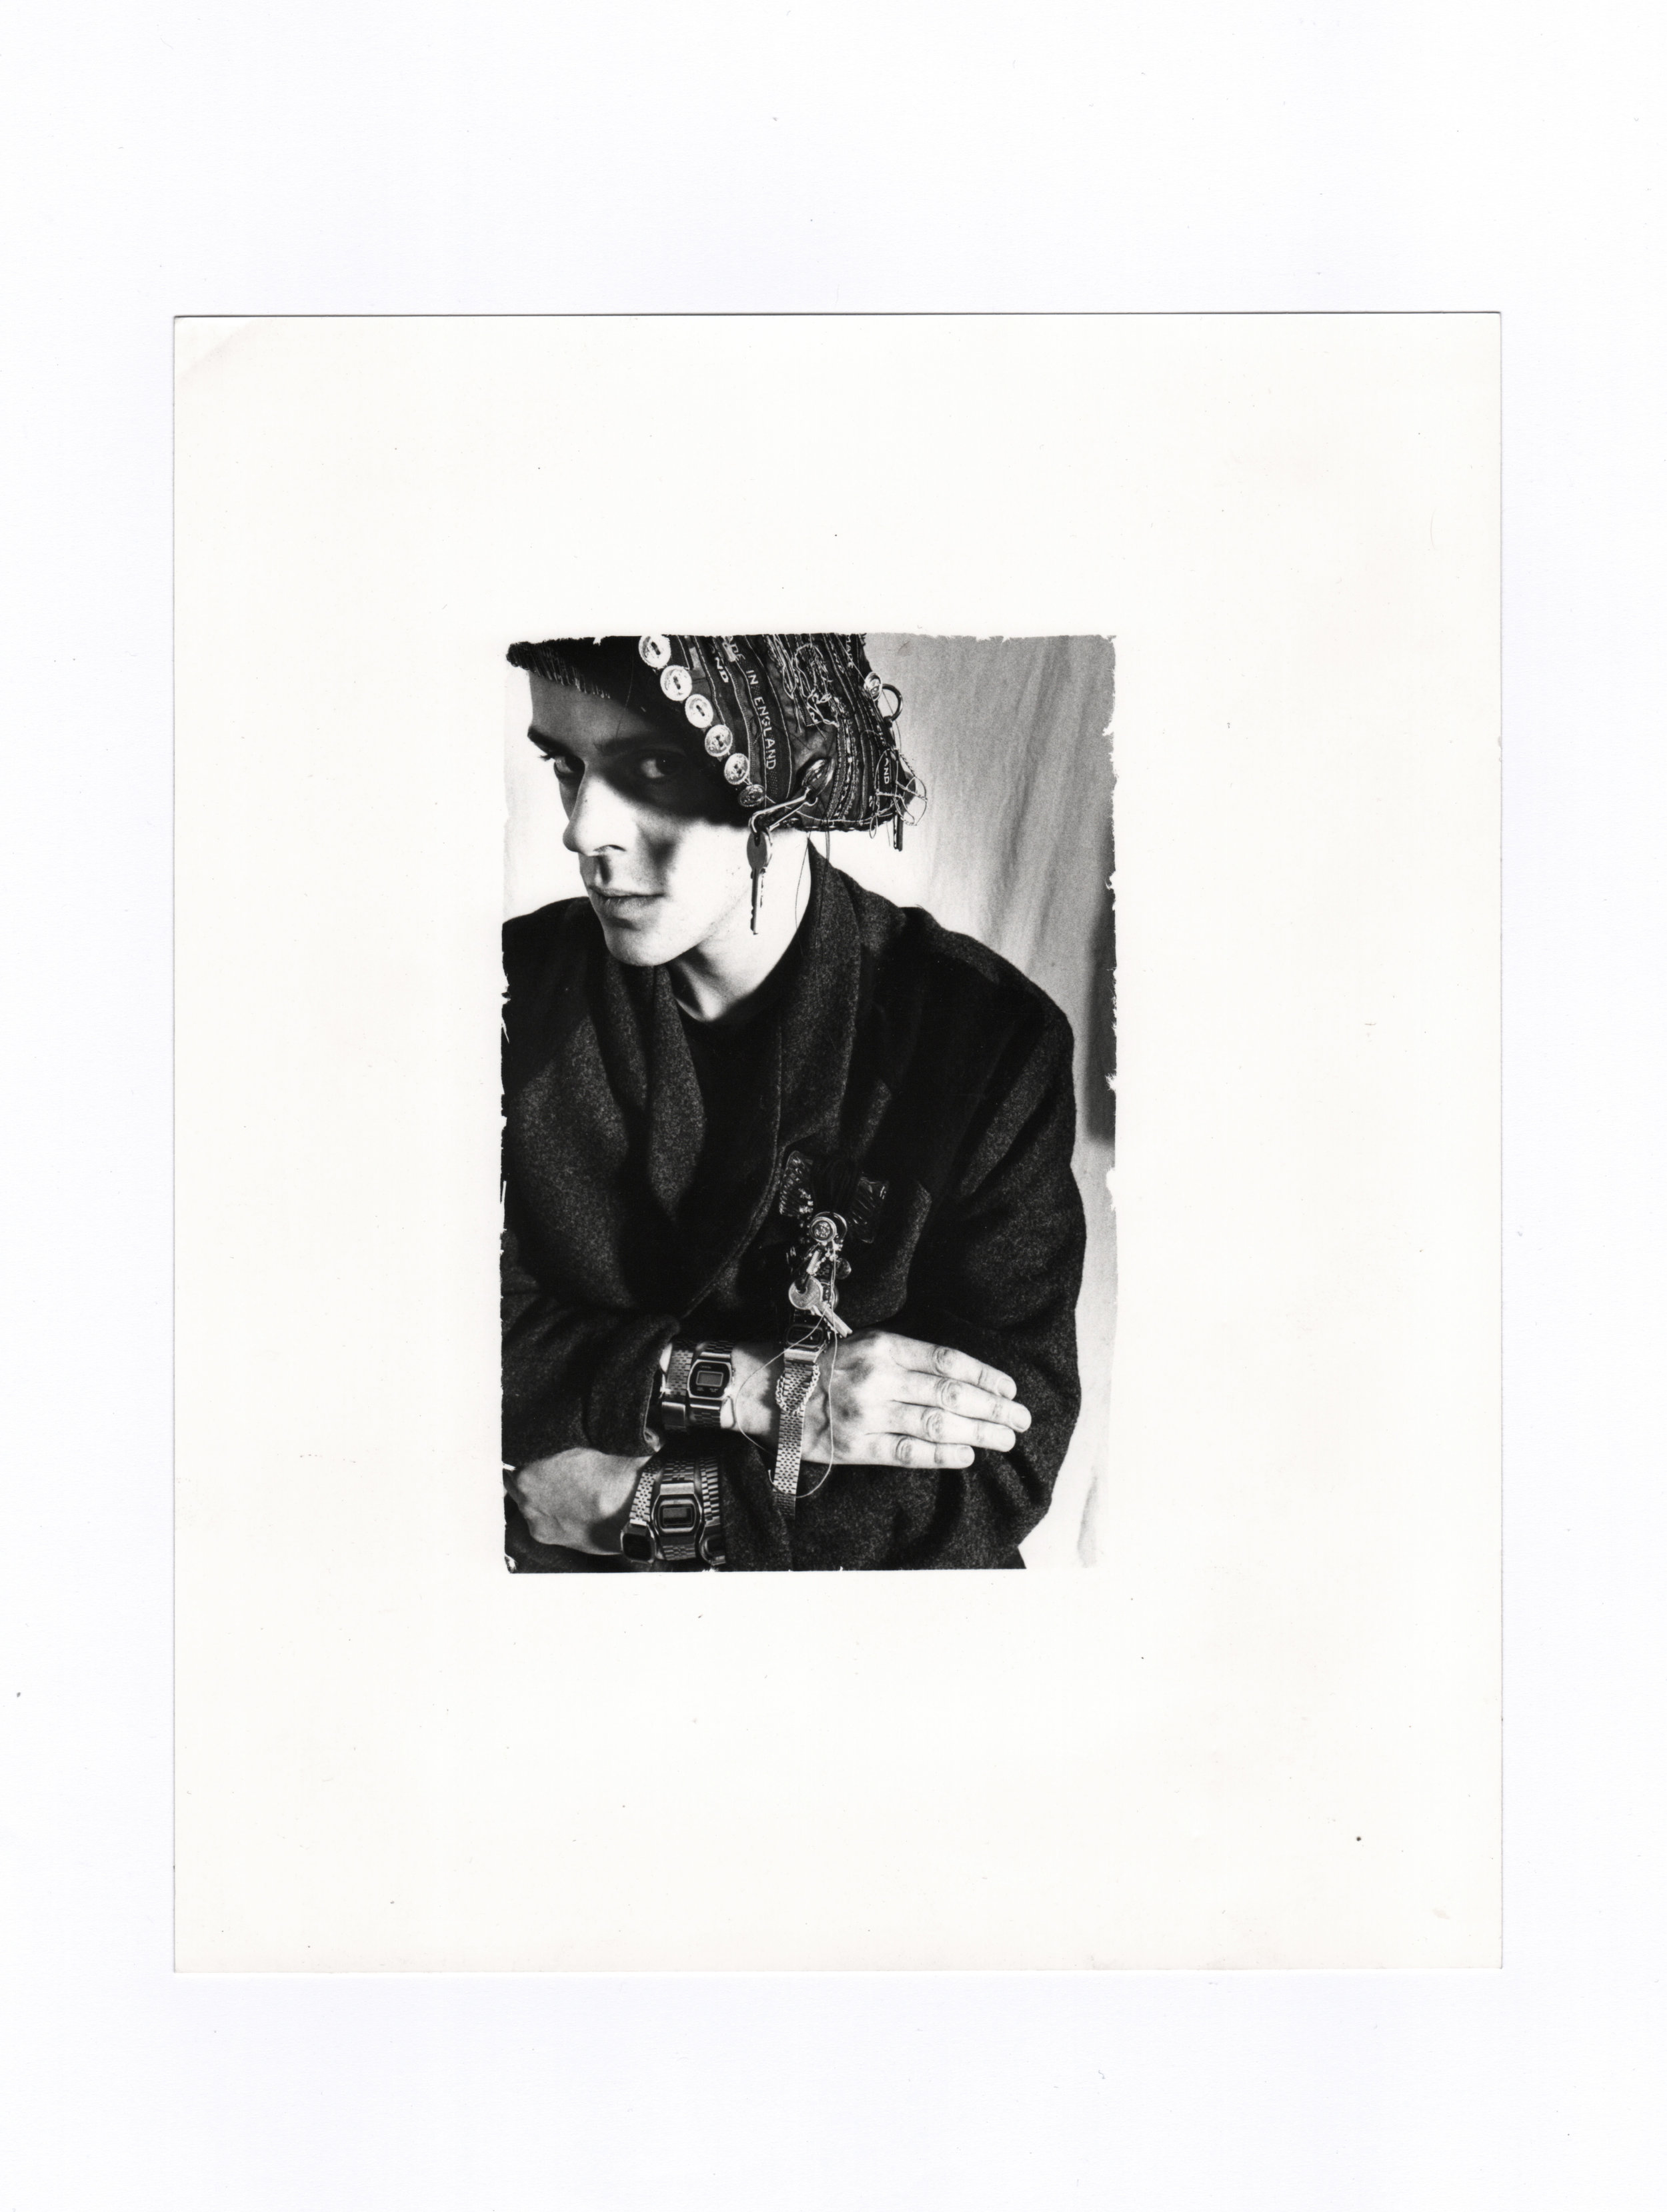 Judy Blame Exhibition at ICA 'Judy Blame, Never Again' ©Judy Blame